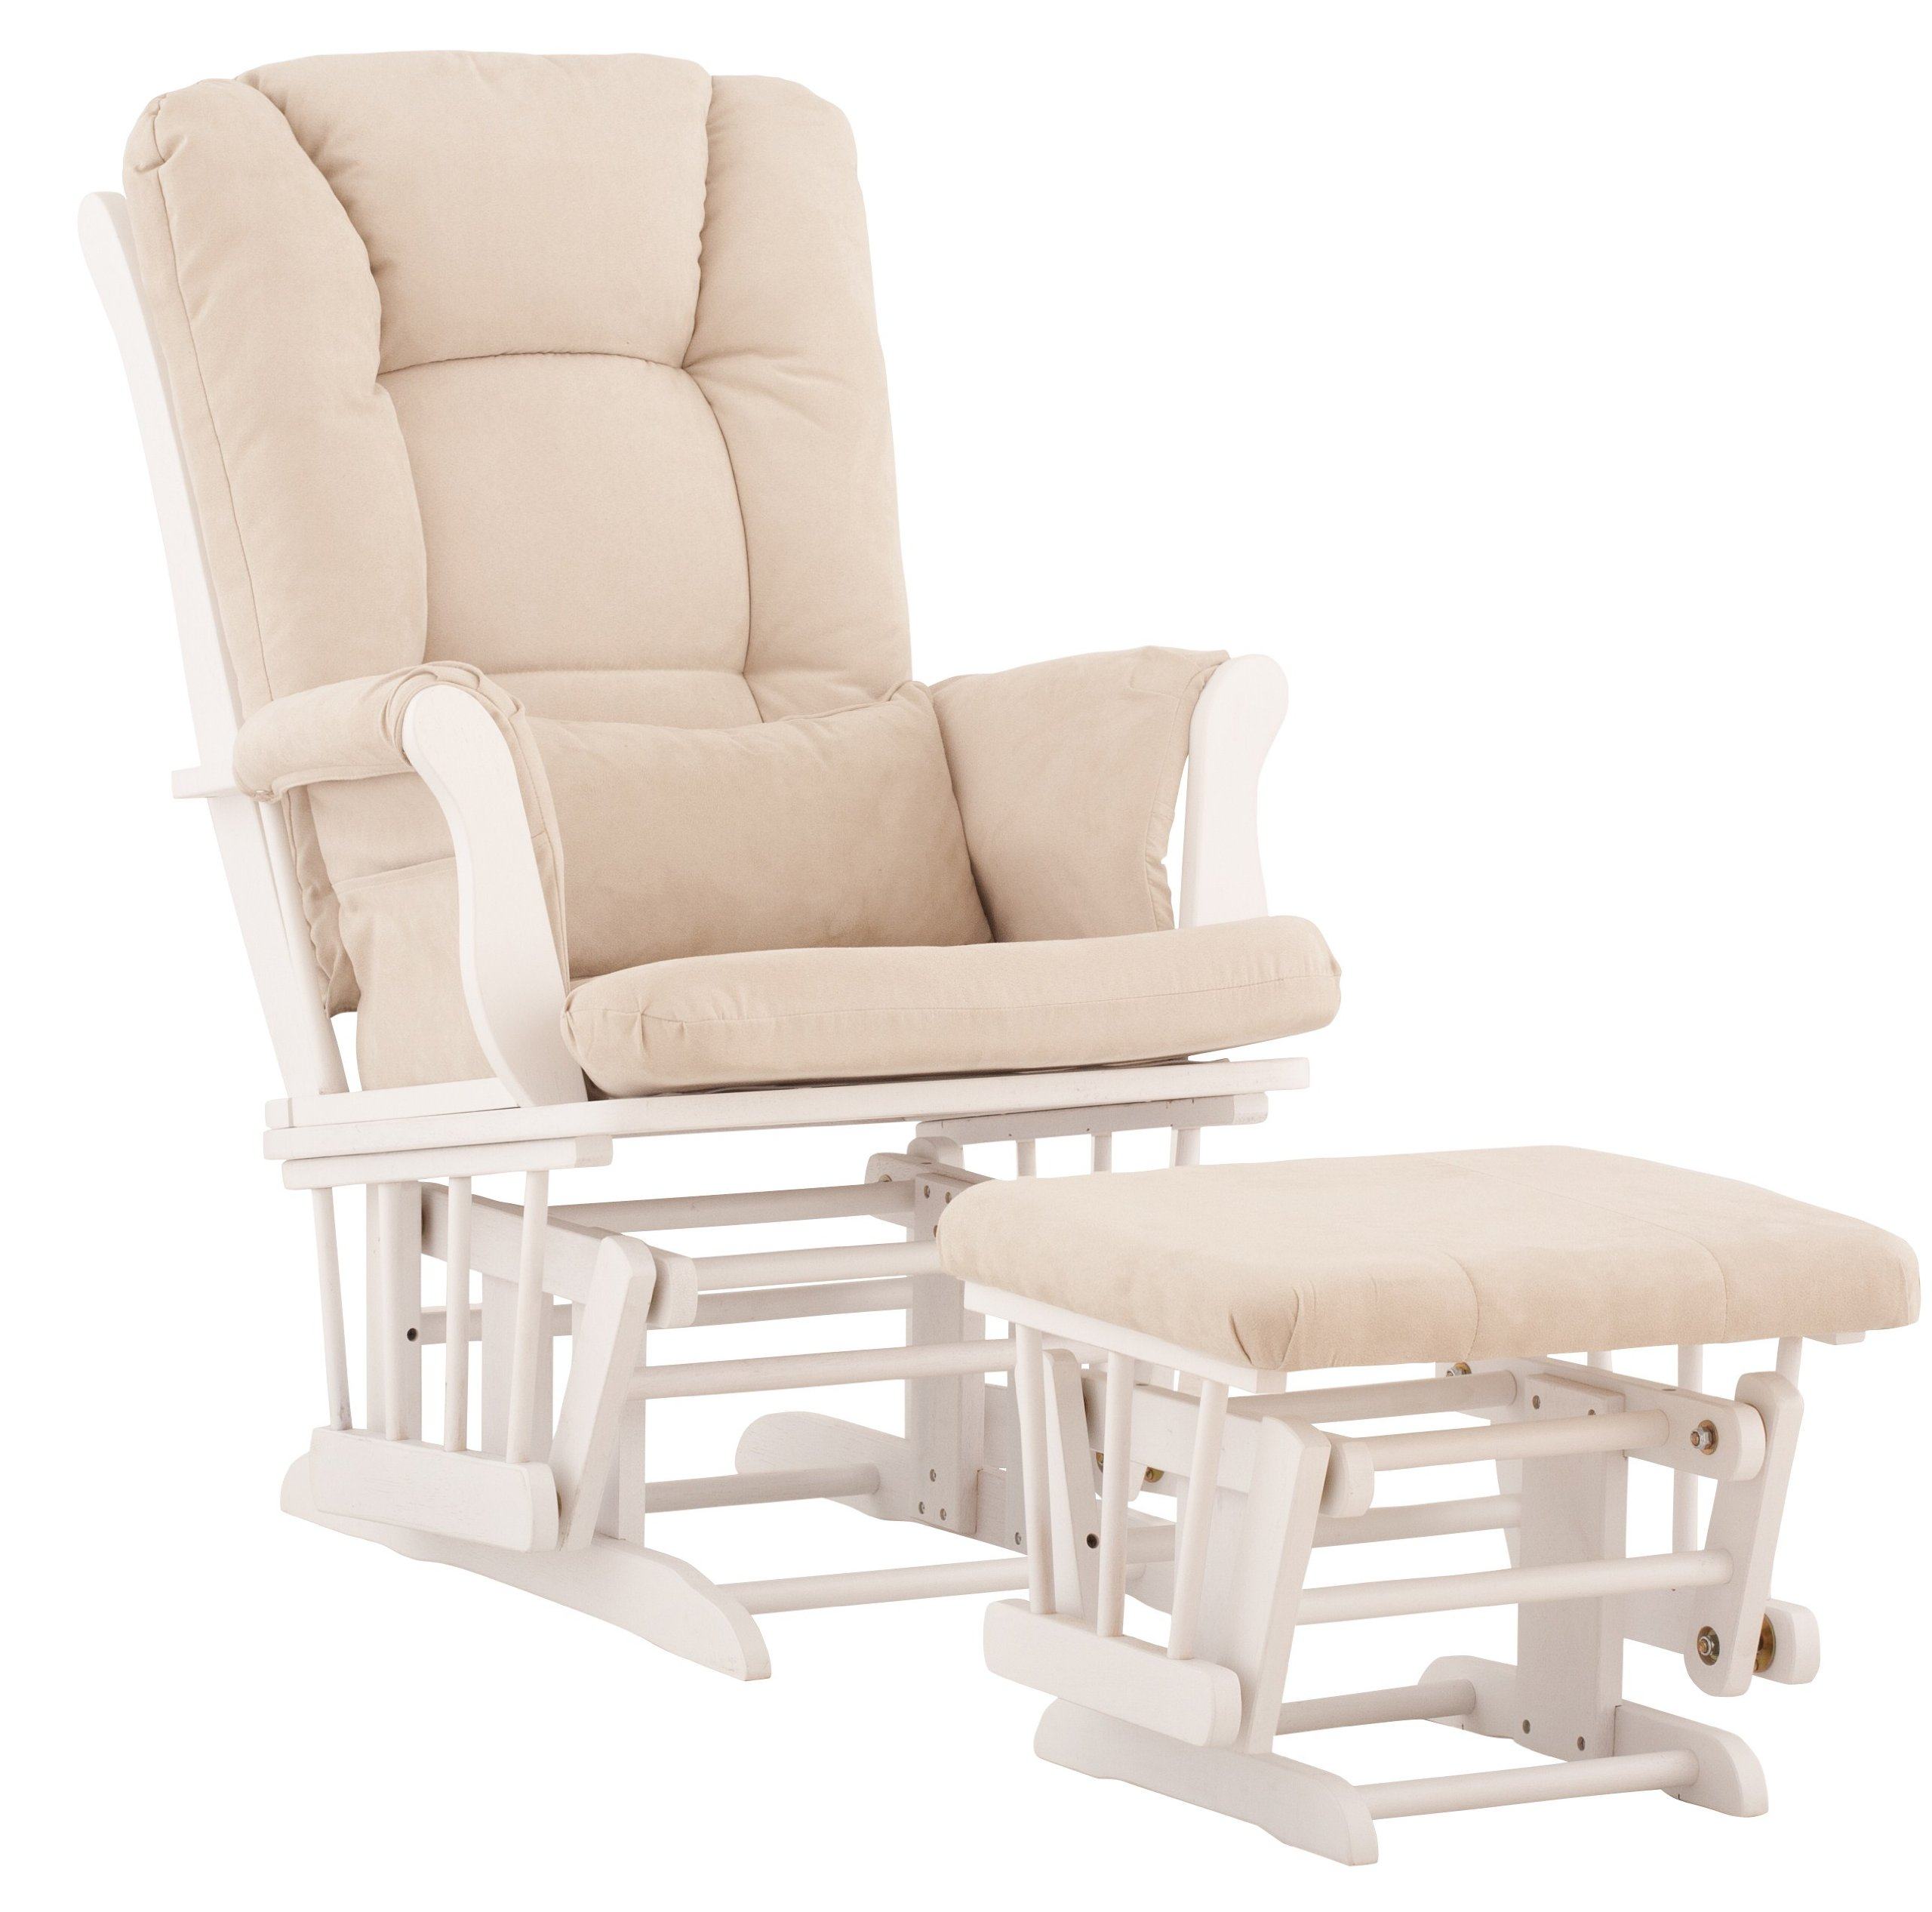 Stork Craft Tuscany Custom Glider and Ottoman with Free Lumbar Pillow, White/Beige by Stork Craft (Image #2)